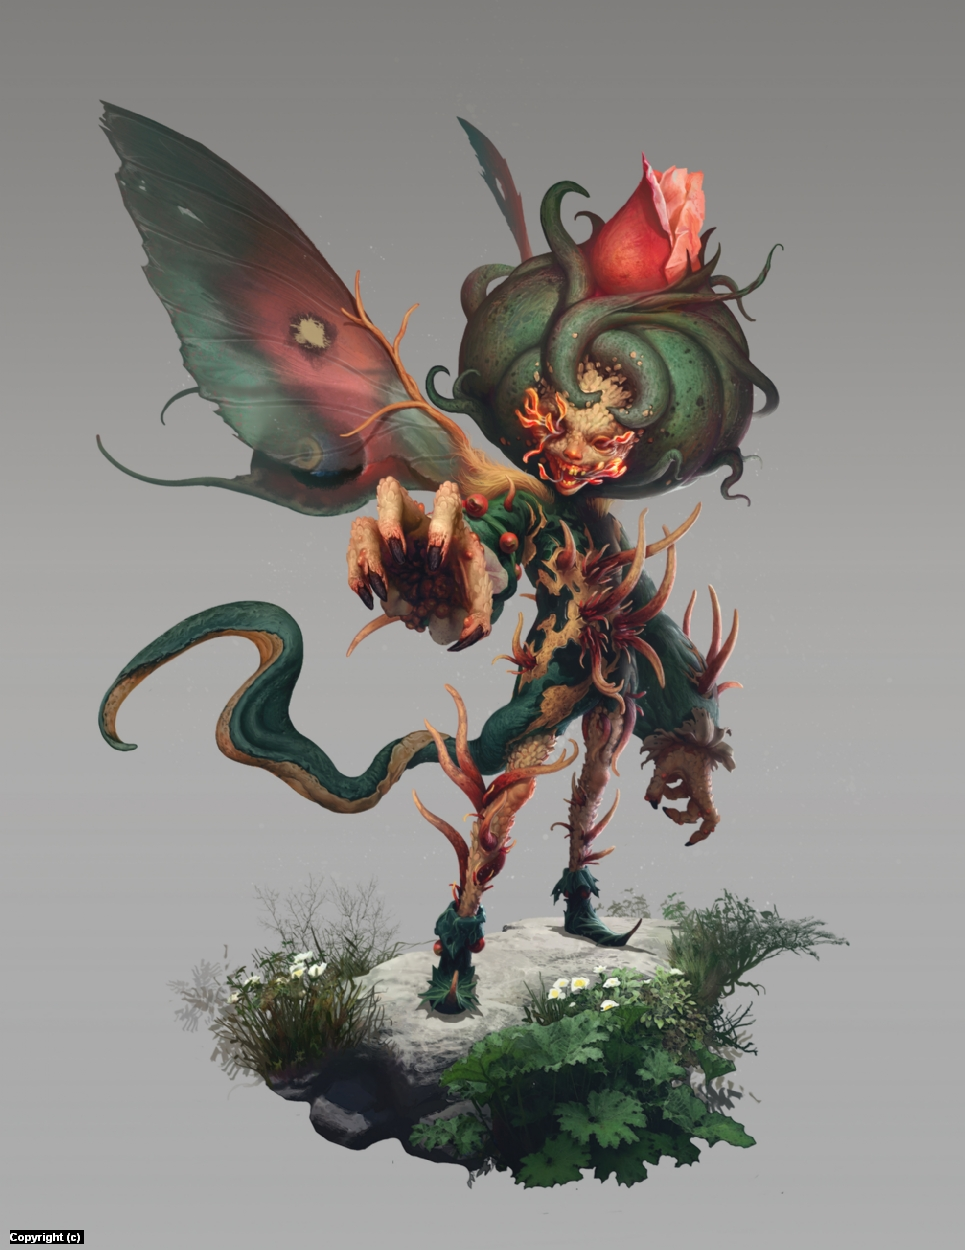 Infected Fairy Artwork by Quentin Castel